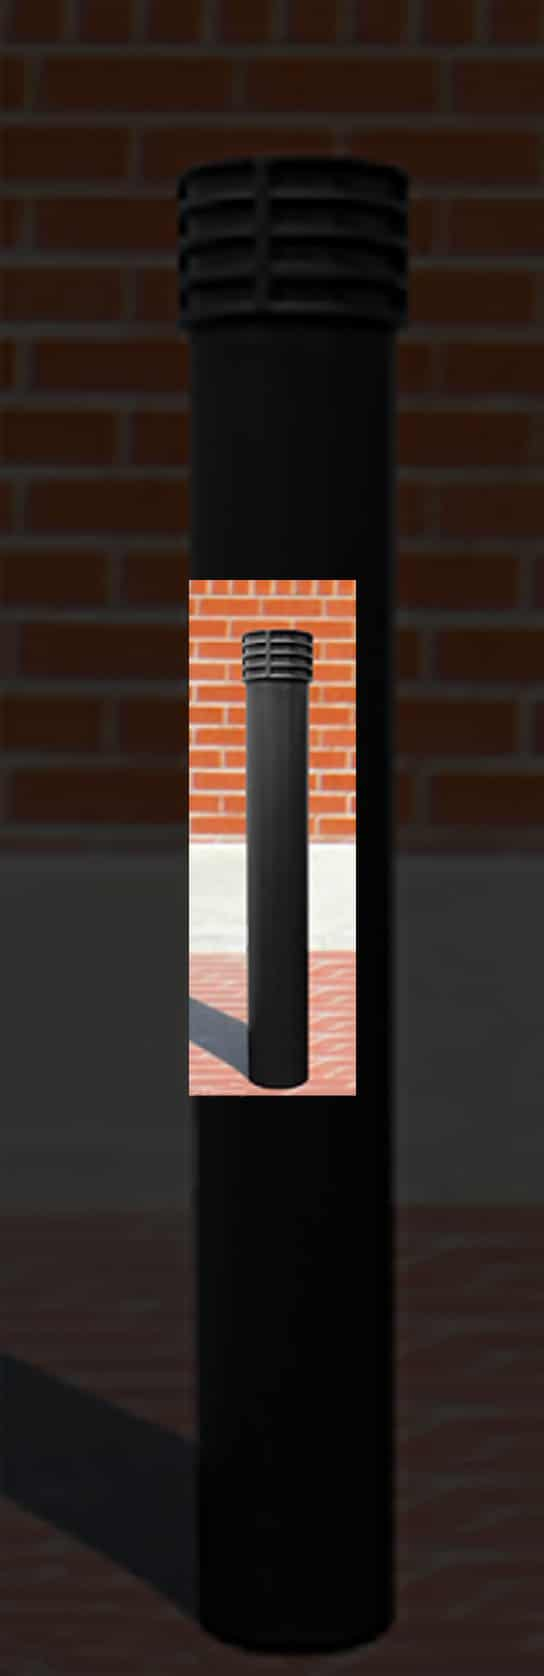 The Bollard Shop, Decorative Bollard Covers, The Bollard Shop, Bollard Caps, Bollard Covers, Steel Bollards, Bollards,